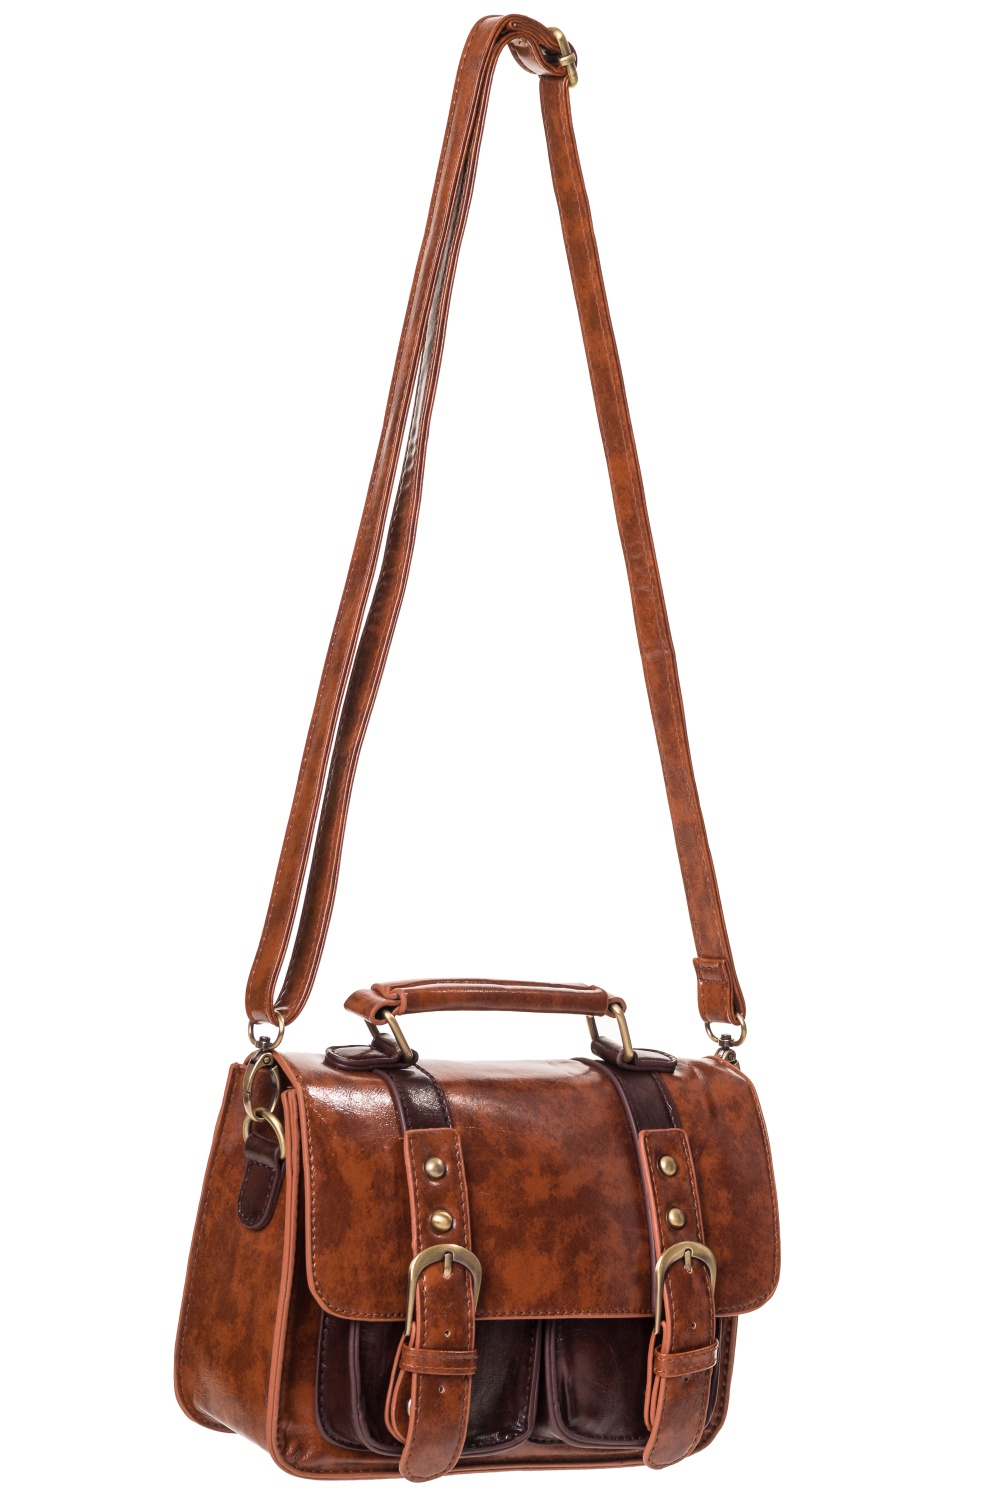 bfeae7ff4439 Steampunk Banned brown imitation leather handbag satchel Banned BBN7051  Click to enlarge